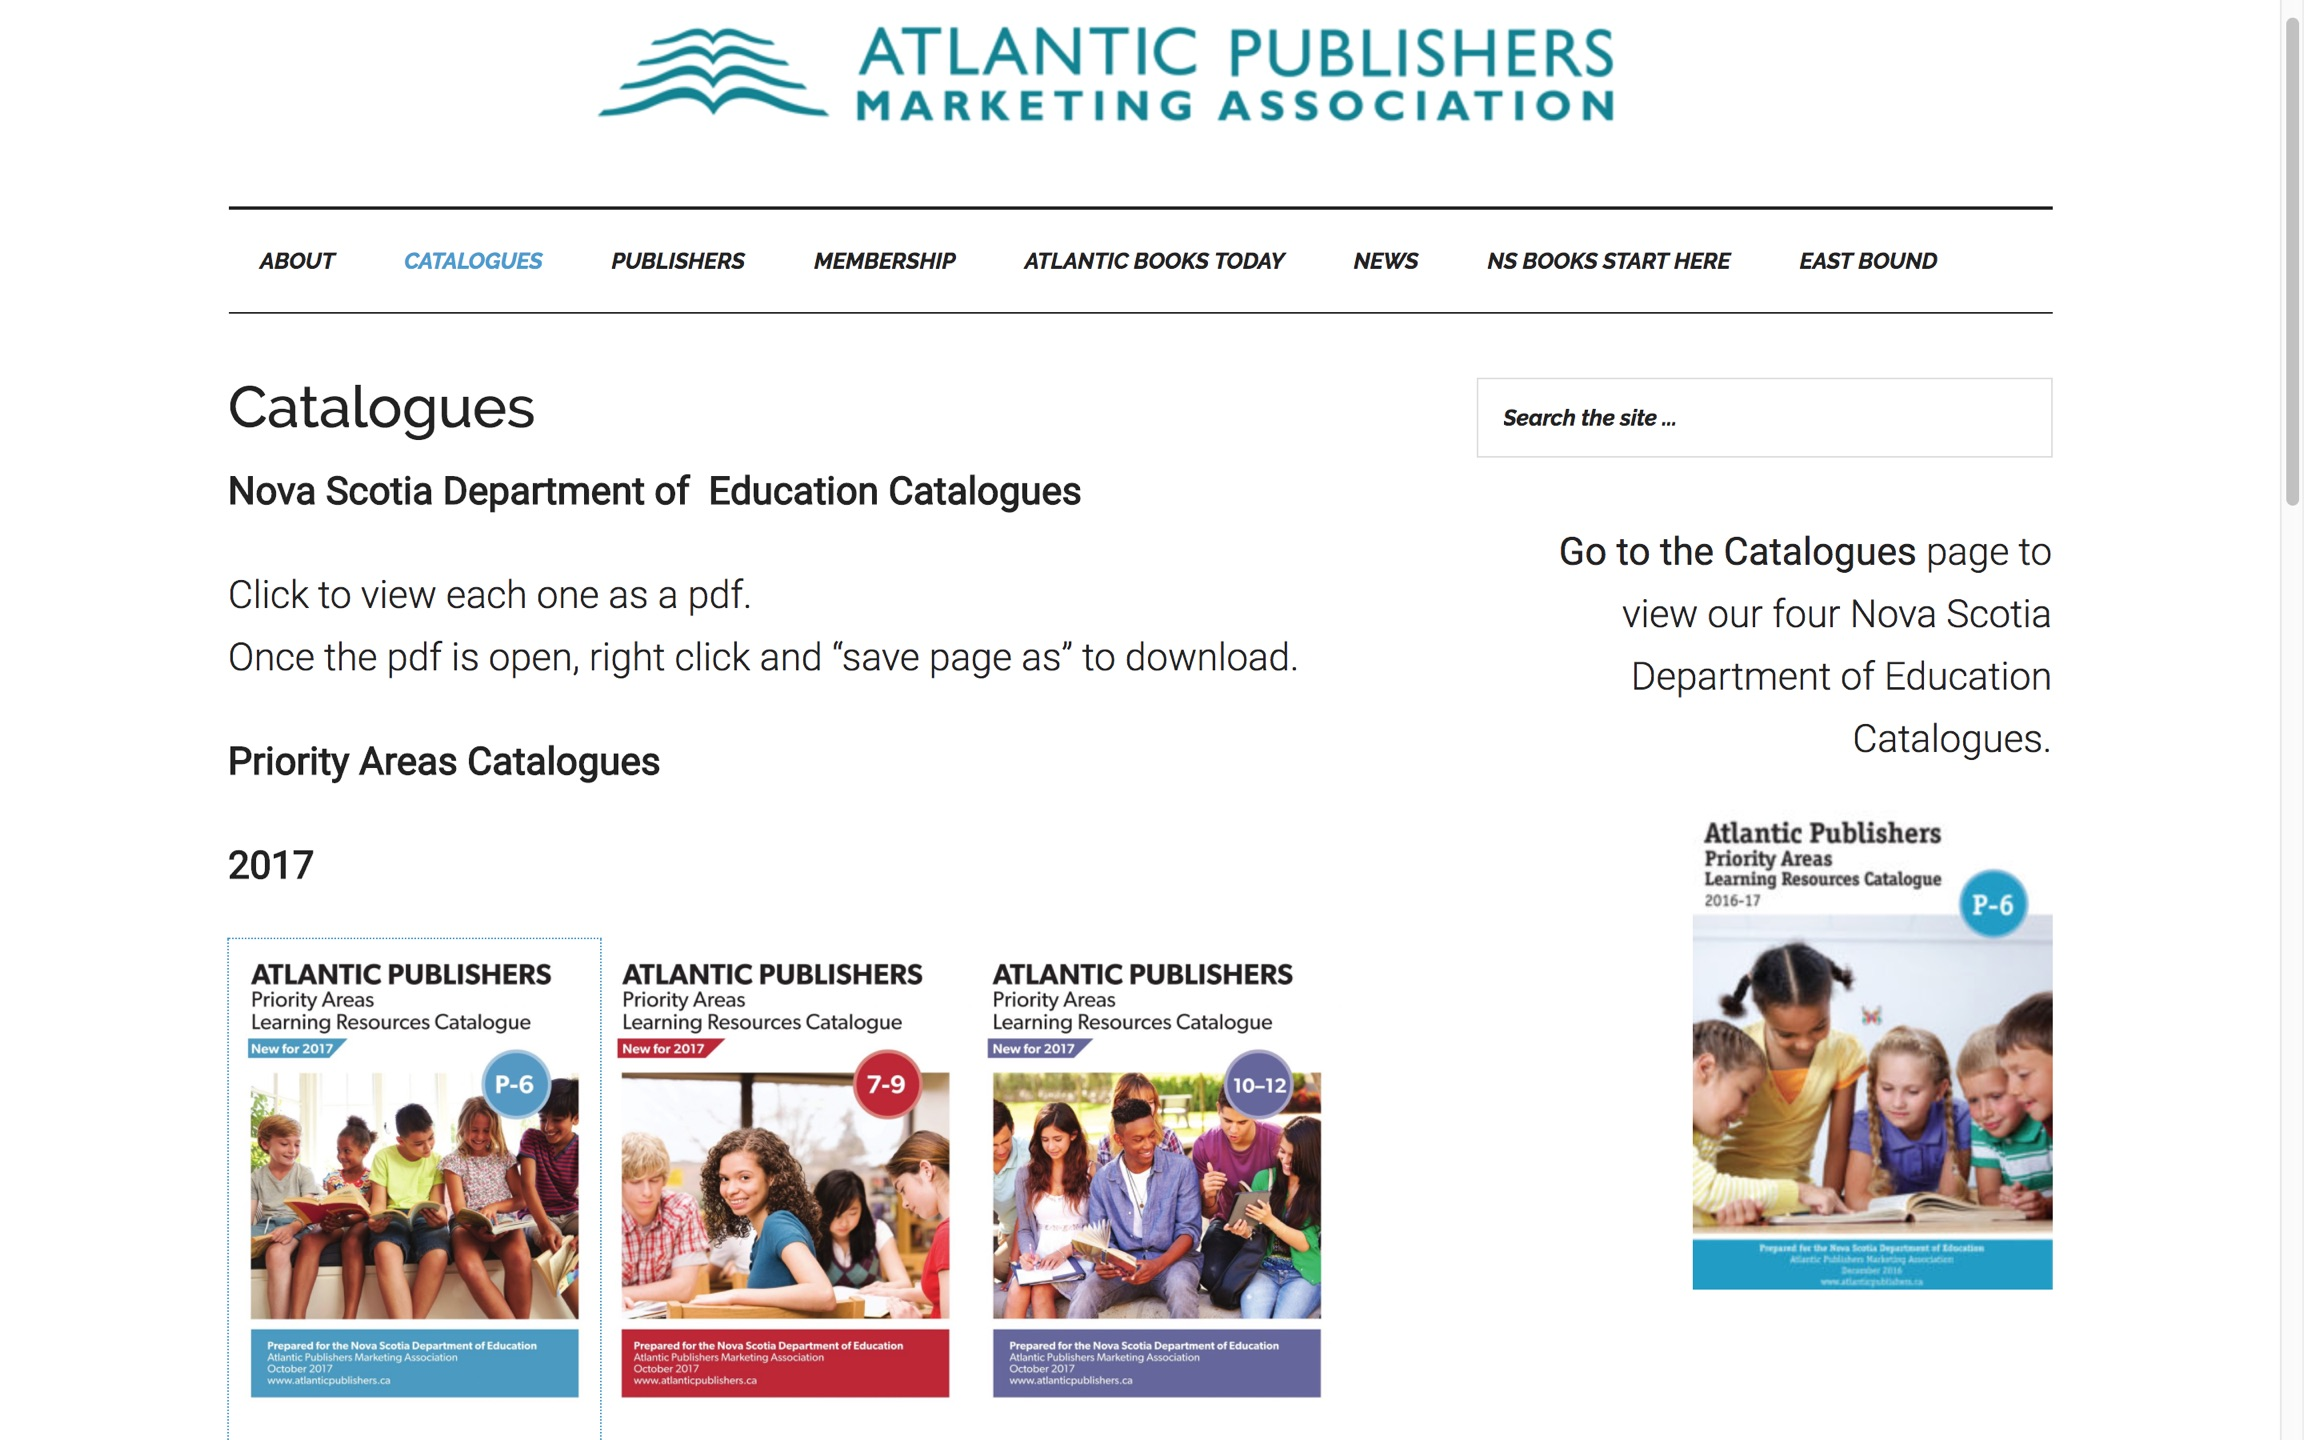 Atlantic Publishers Marketing Association Catalog Generation Application